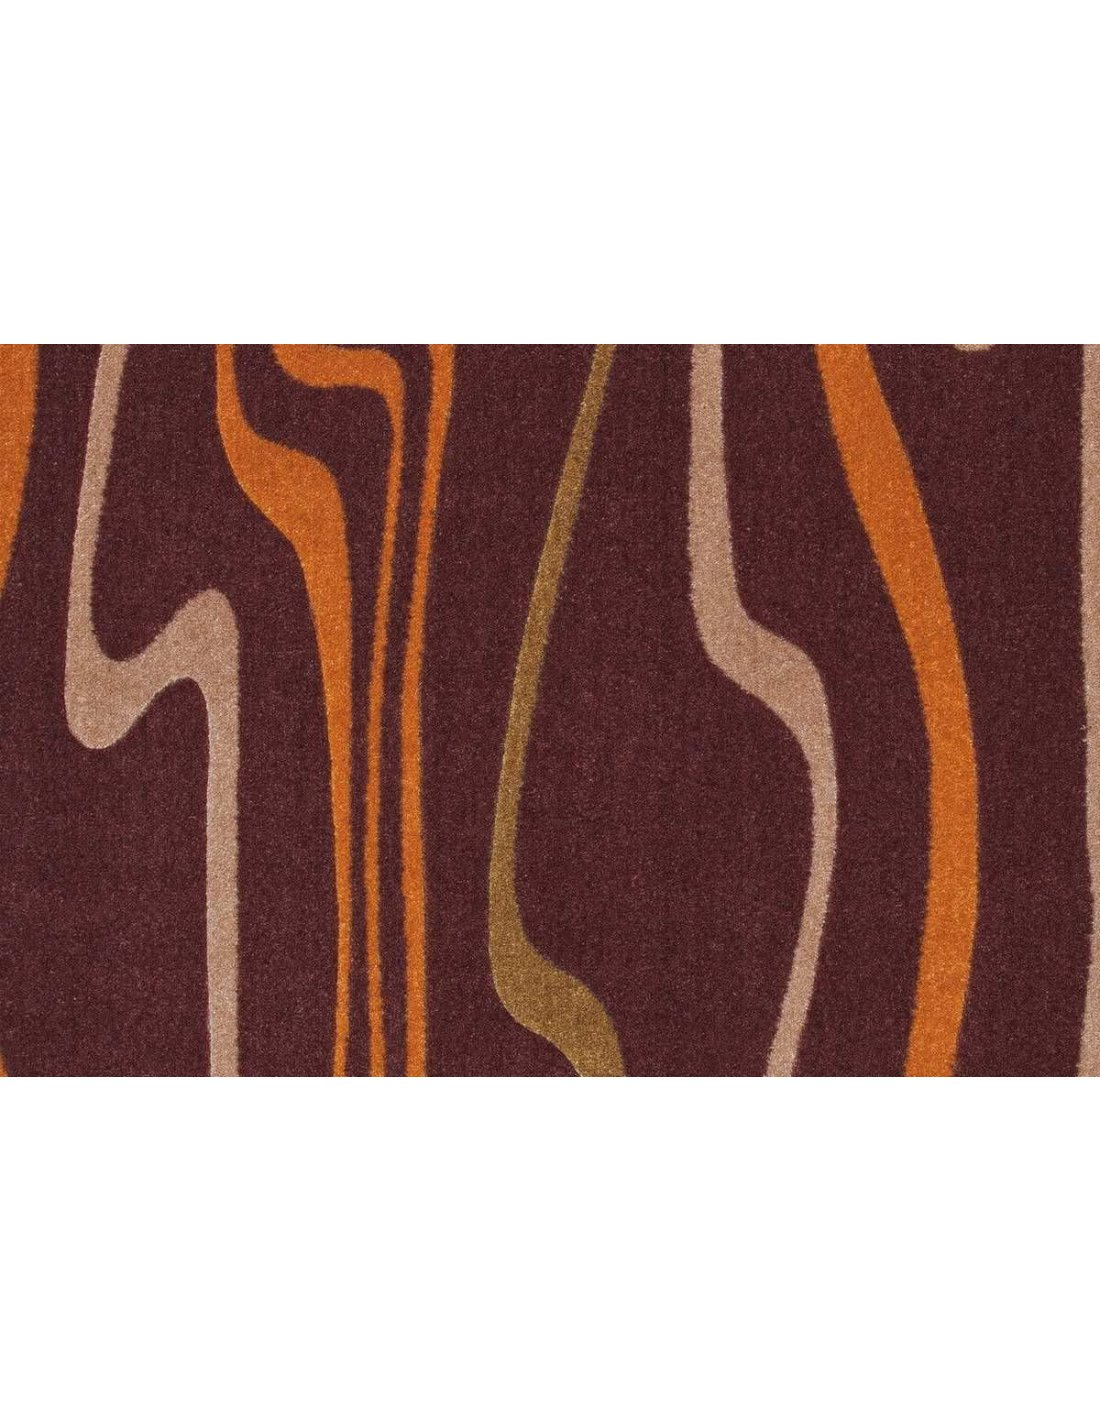 Tapis STYLE DE 42 Marron Orange | Arte Espina | Marron